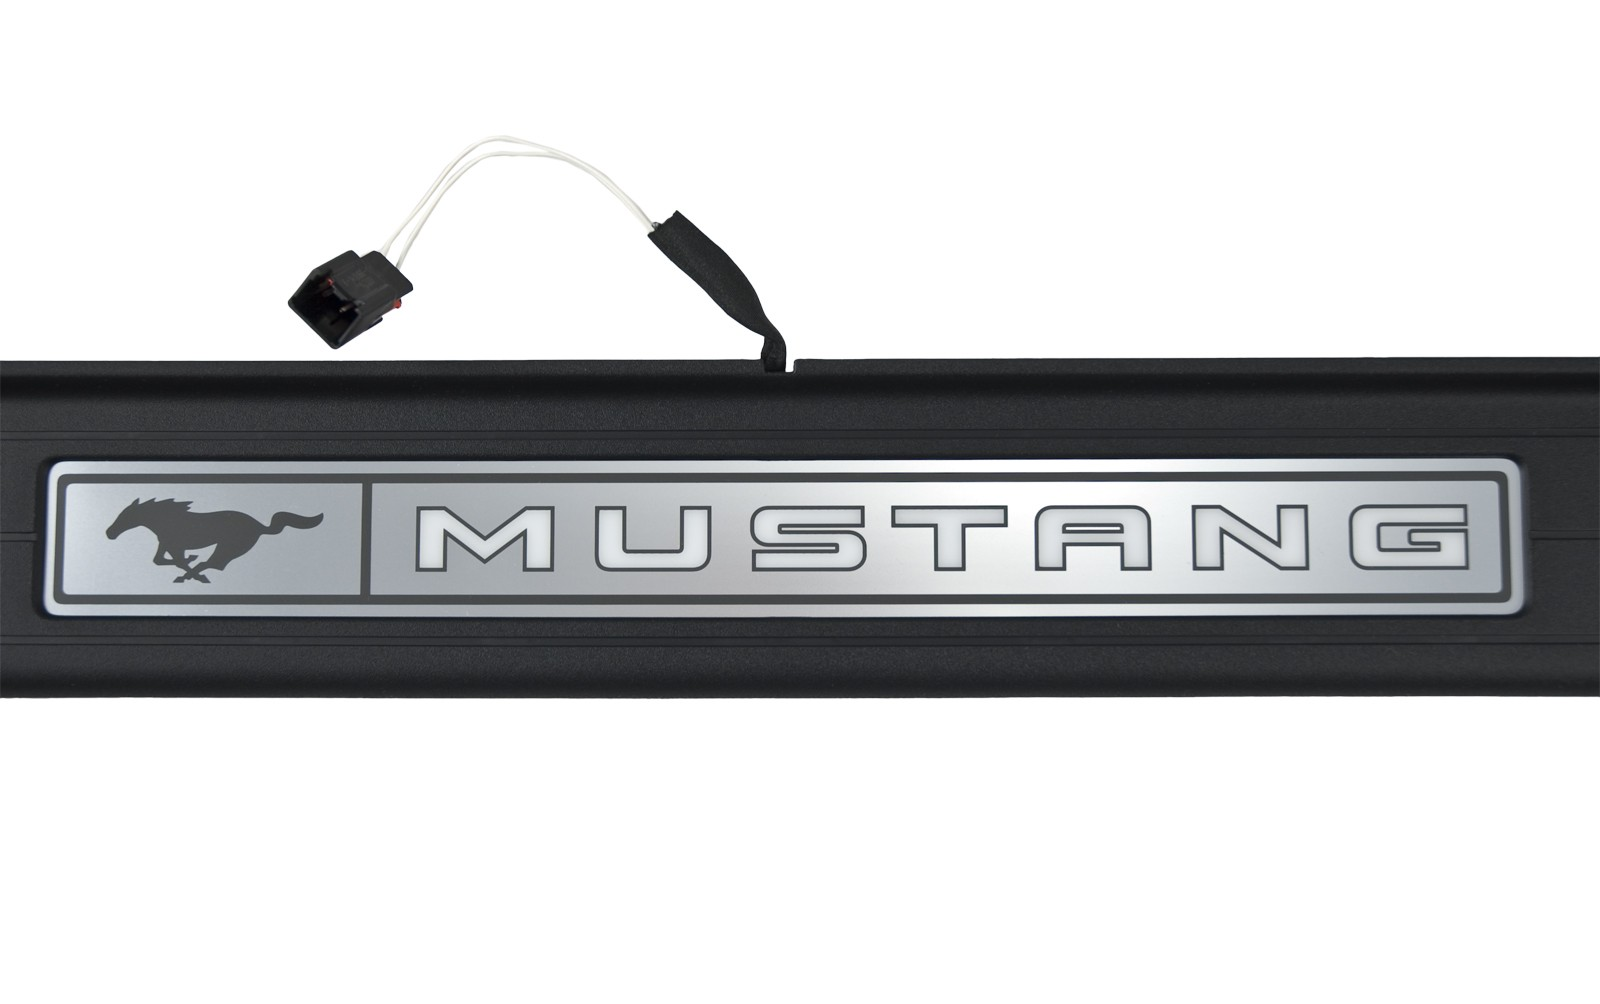 2015-2017 Mustang Illuminated Lighted Door Sill Step Plates w/ Wiring  Harness